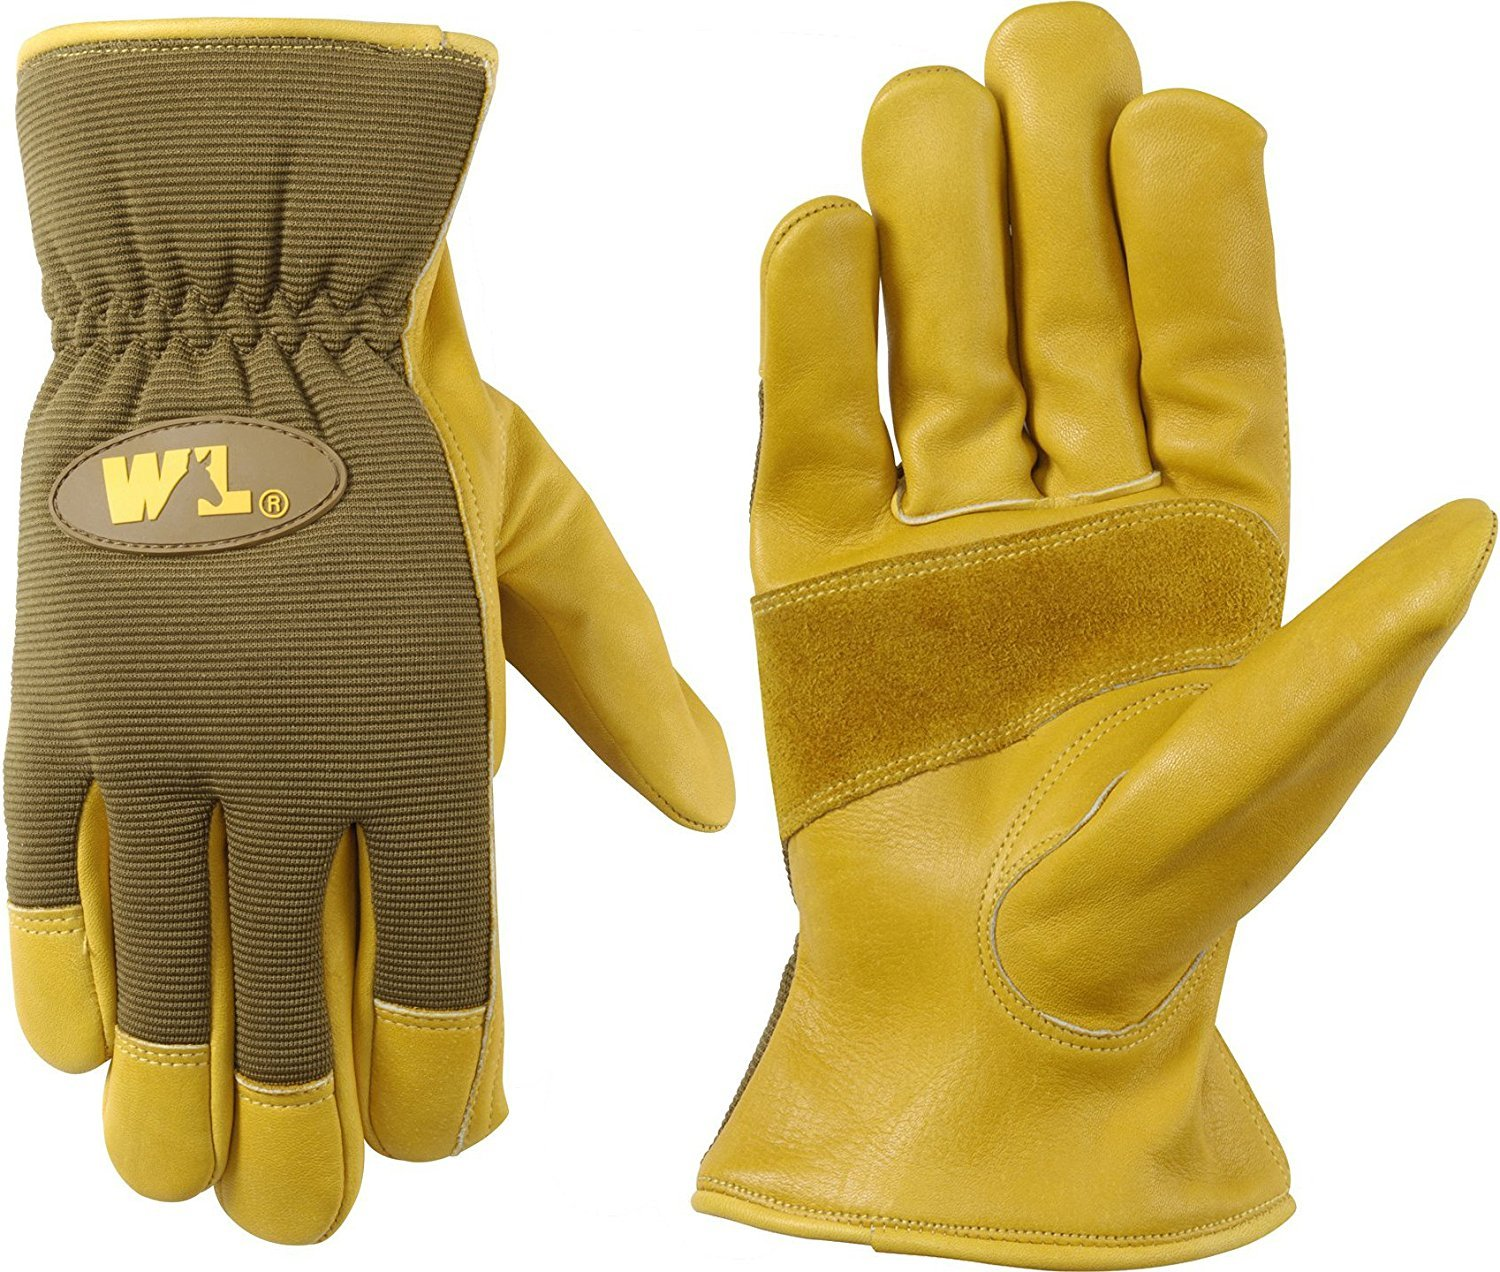 Good quality leather work gloves - High Quality Wells Lamont Leather Palm Work Gloves Cowhide Ultra Comfort Large